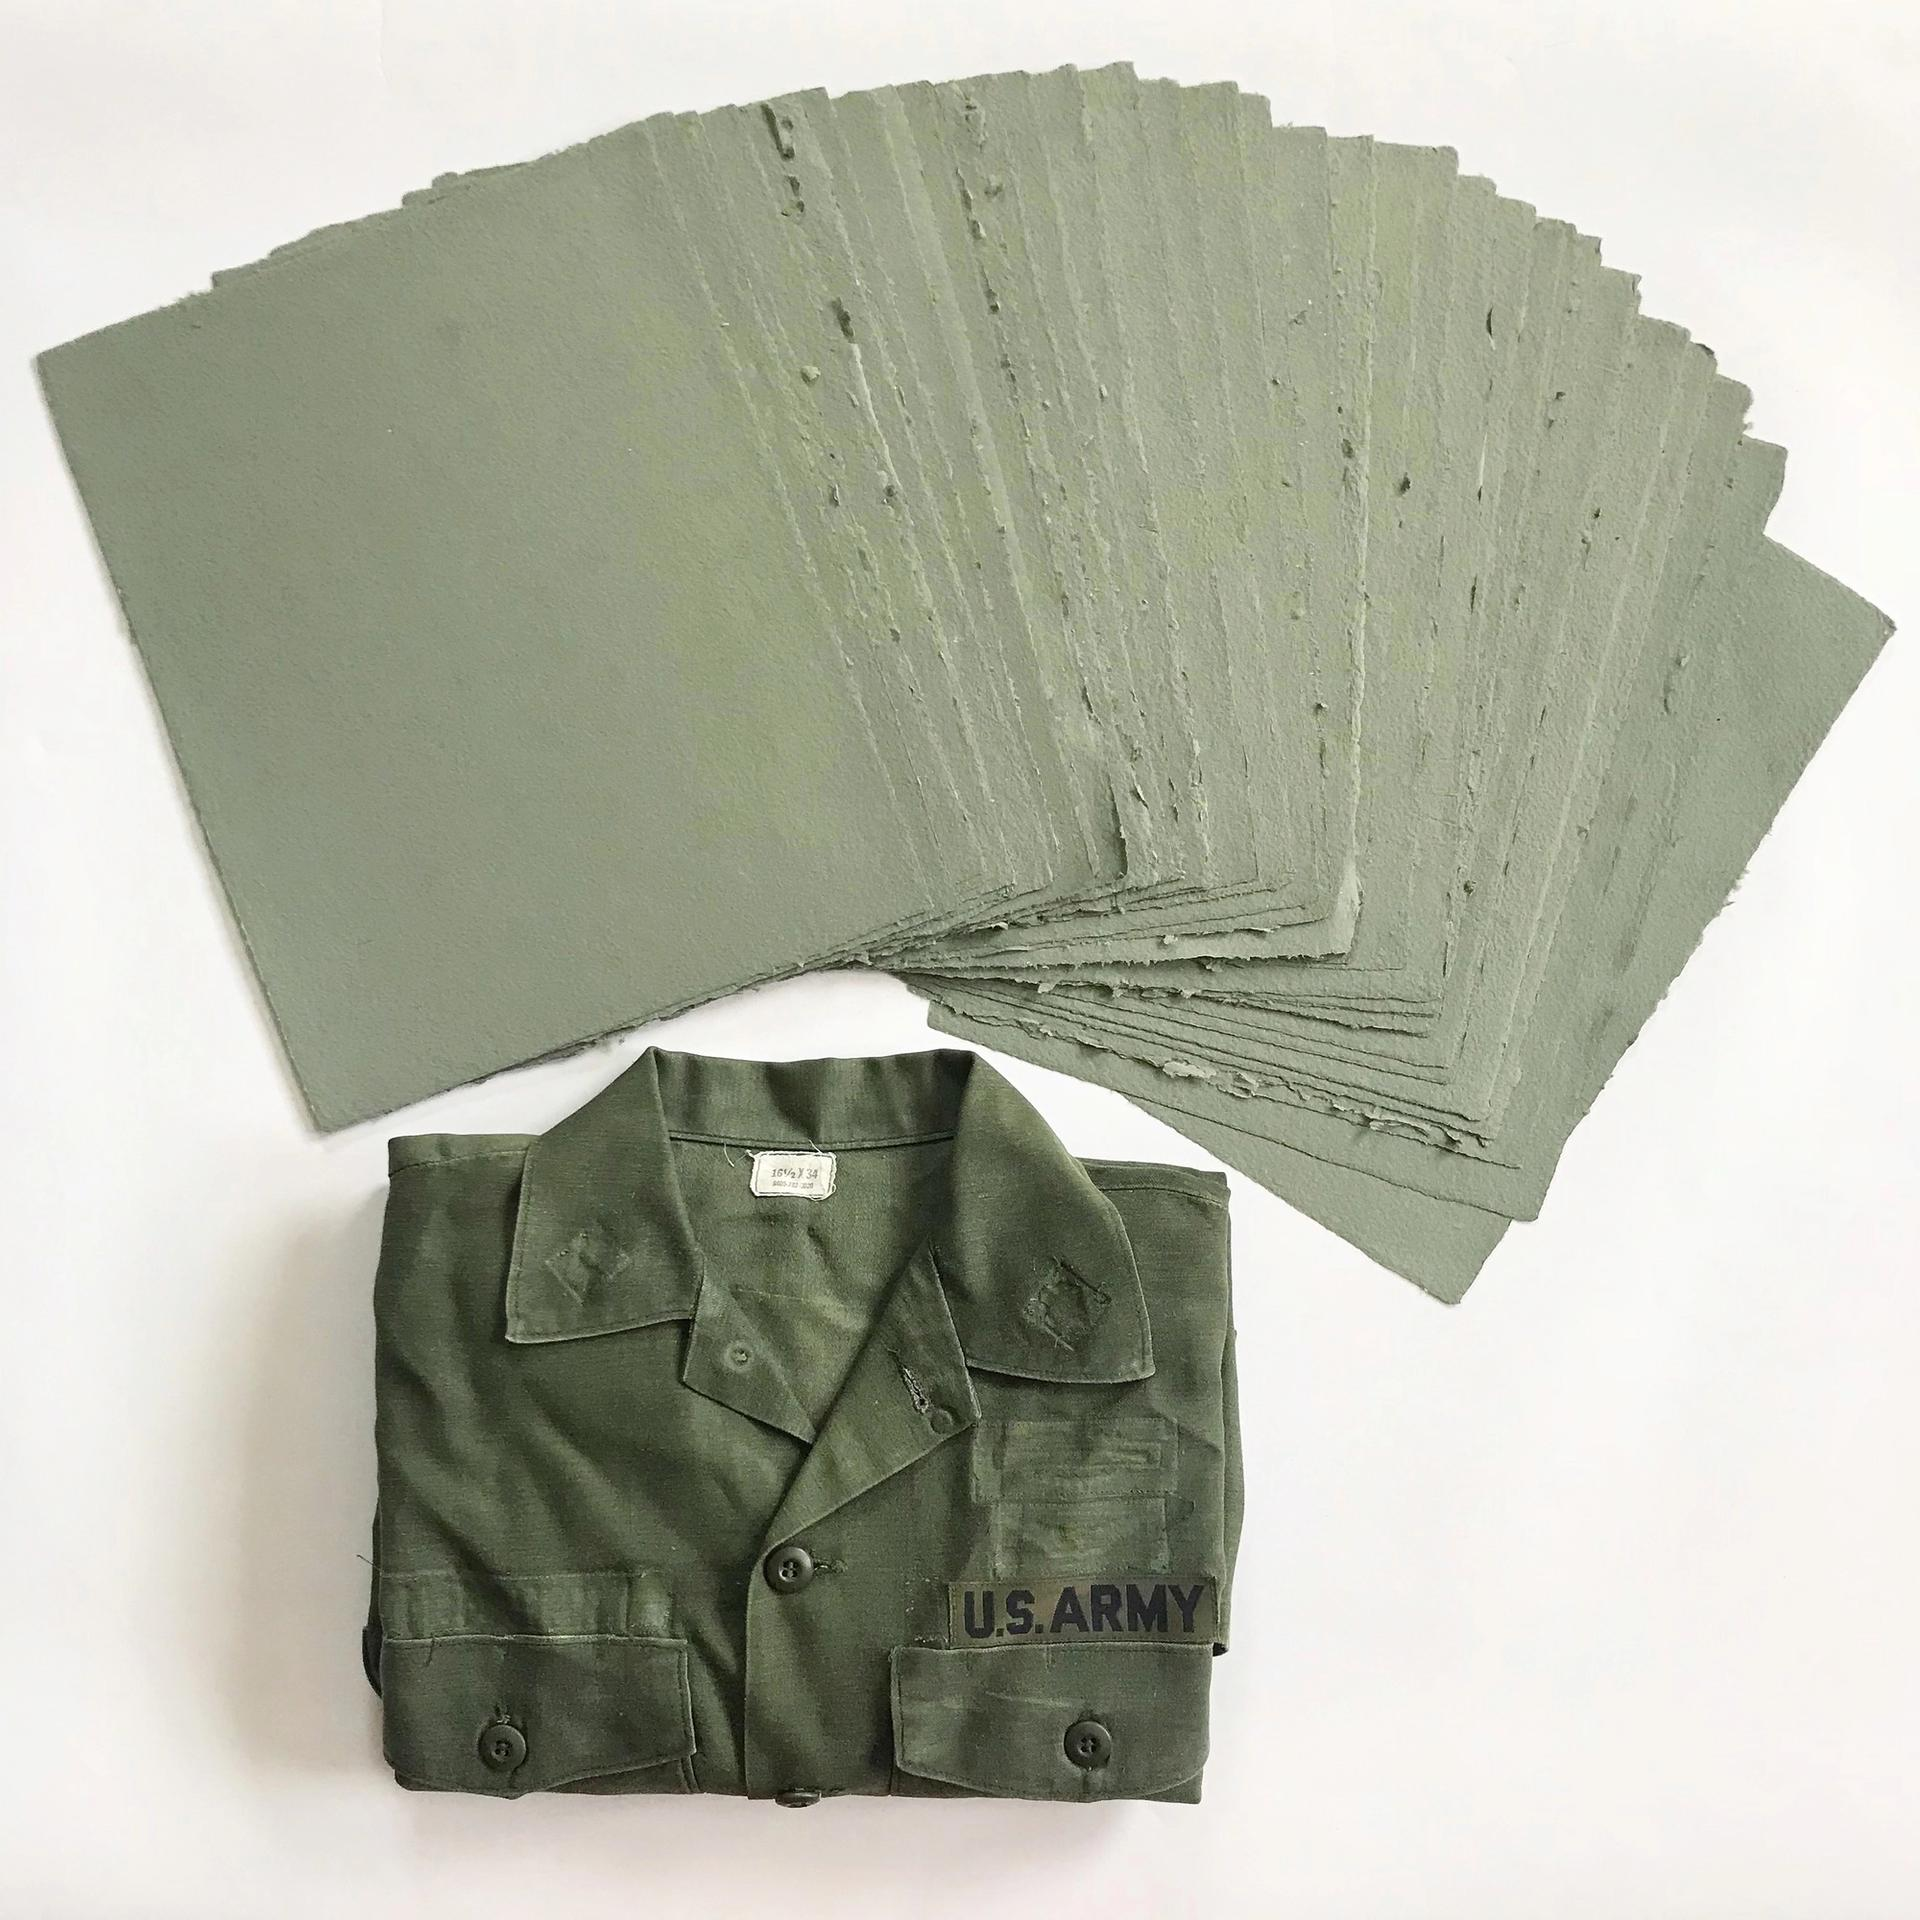 Combat Paper, a veteran-artisan collective led by Drew Cameron, transform donated military fatigues into paper for art making